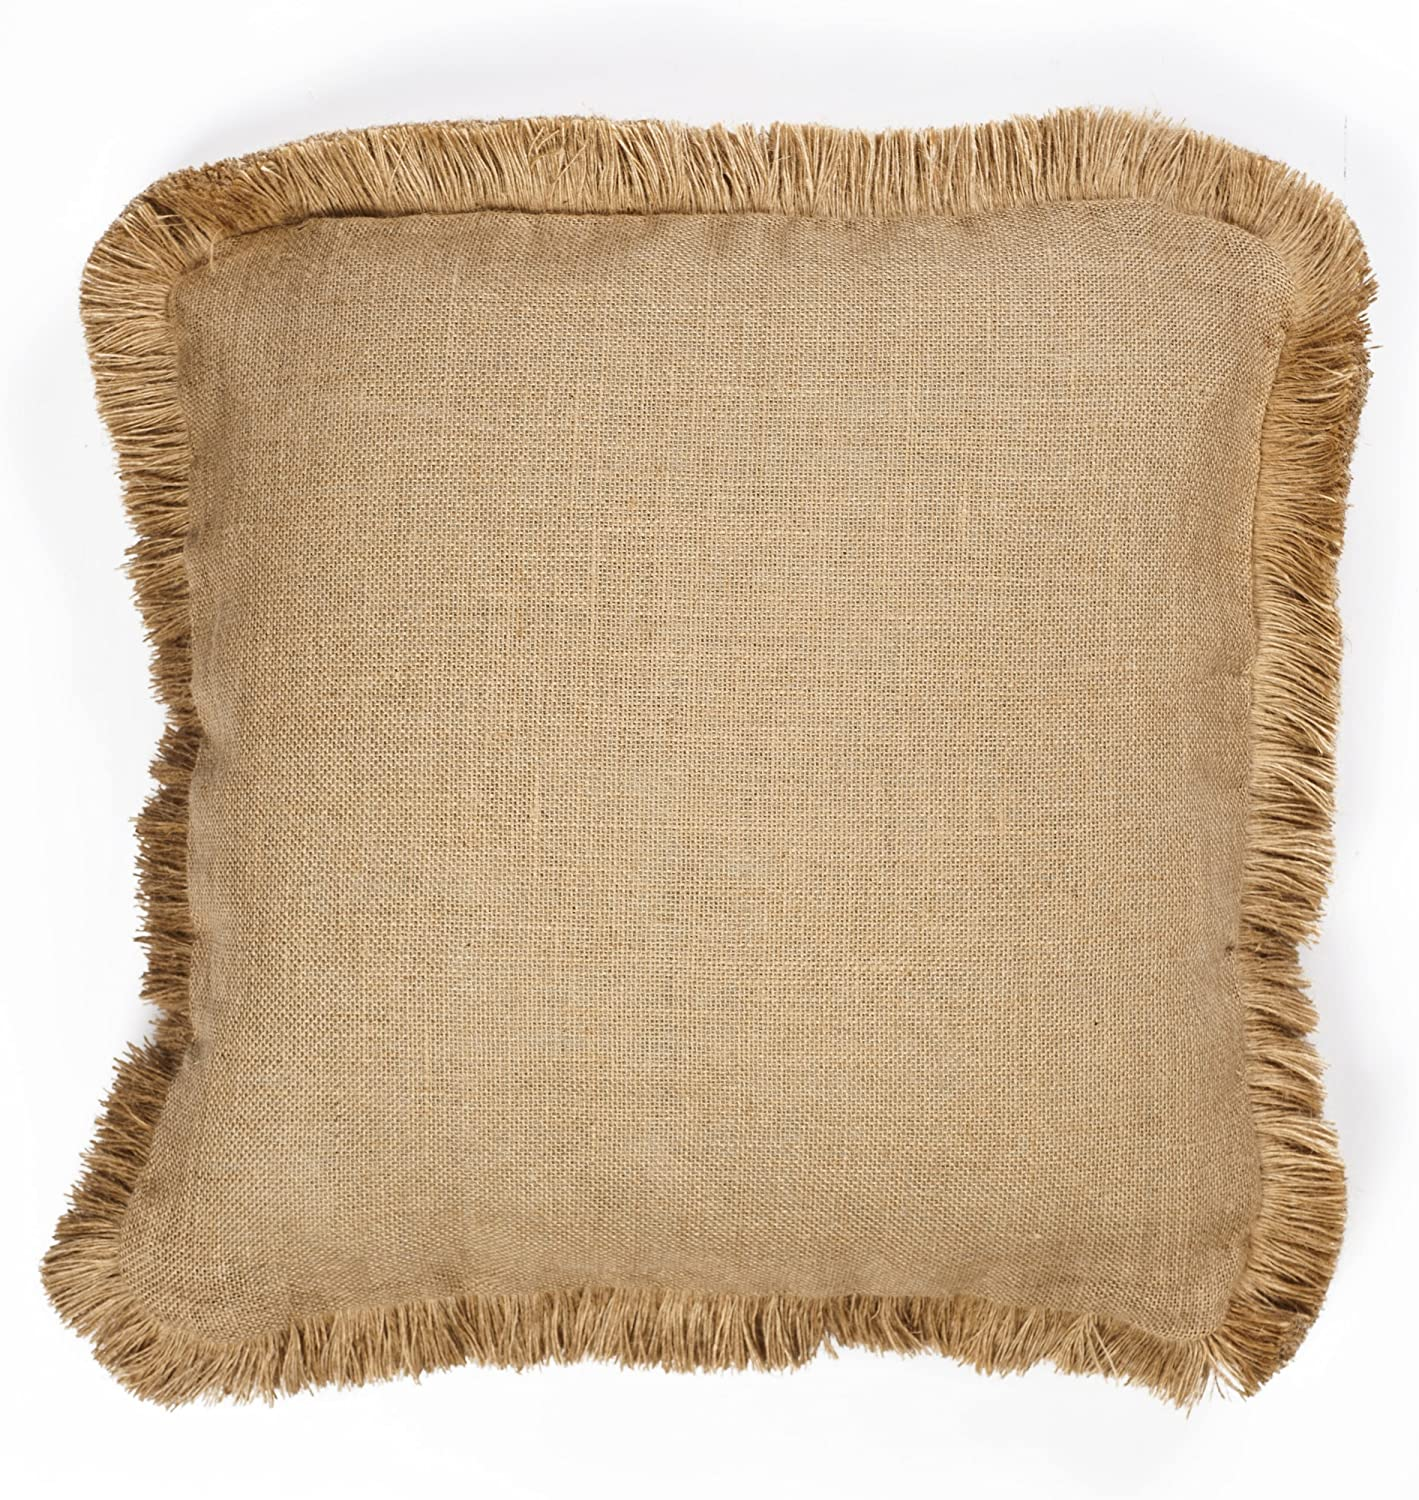 Zentique No Print Square Burlap Pillow with Jute Brush Fringe, 20-Inch, Natural